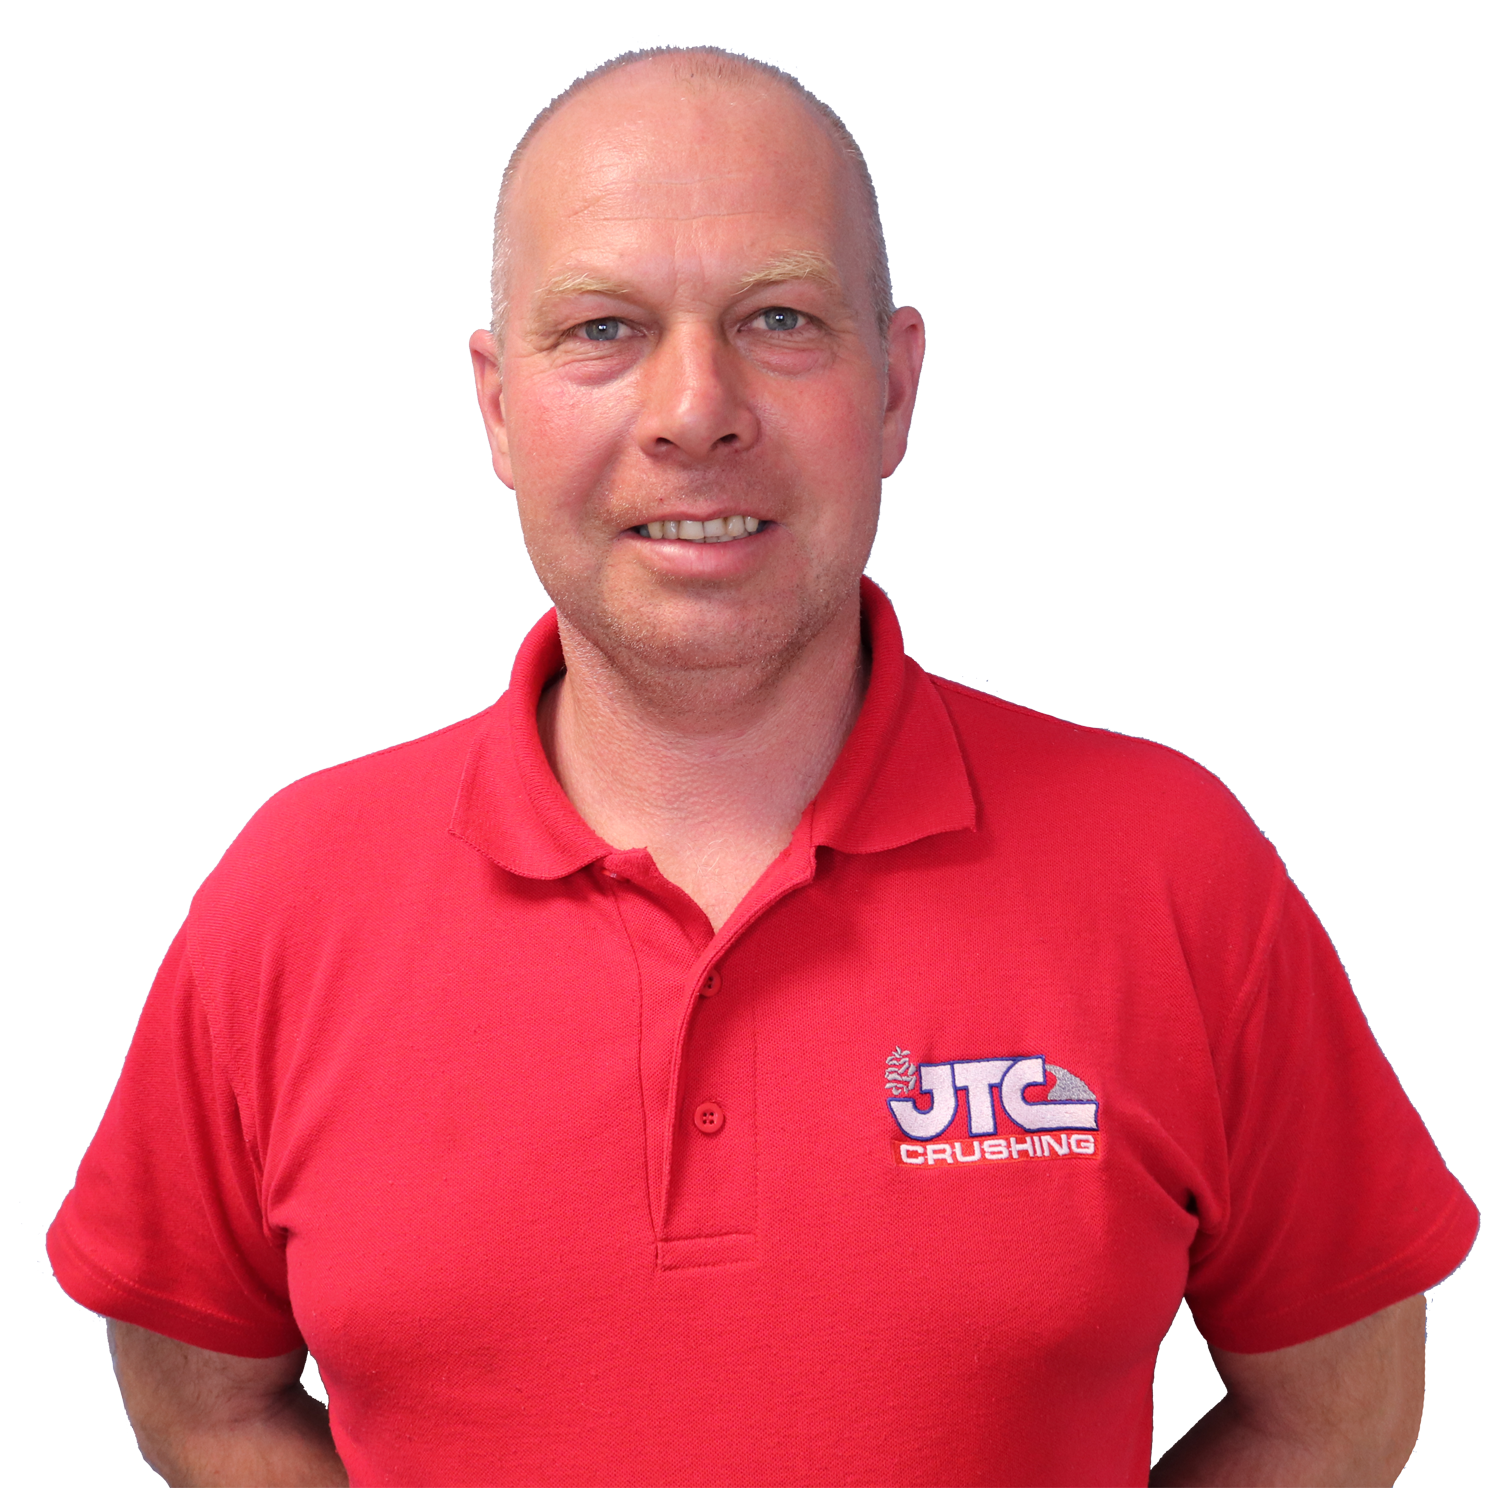 Neil from JTC